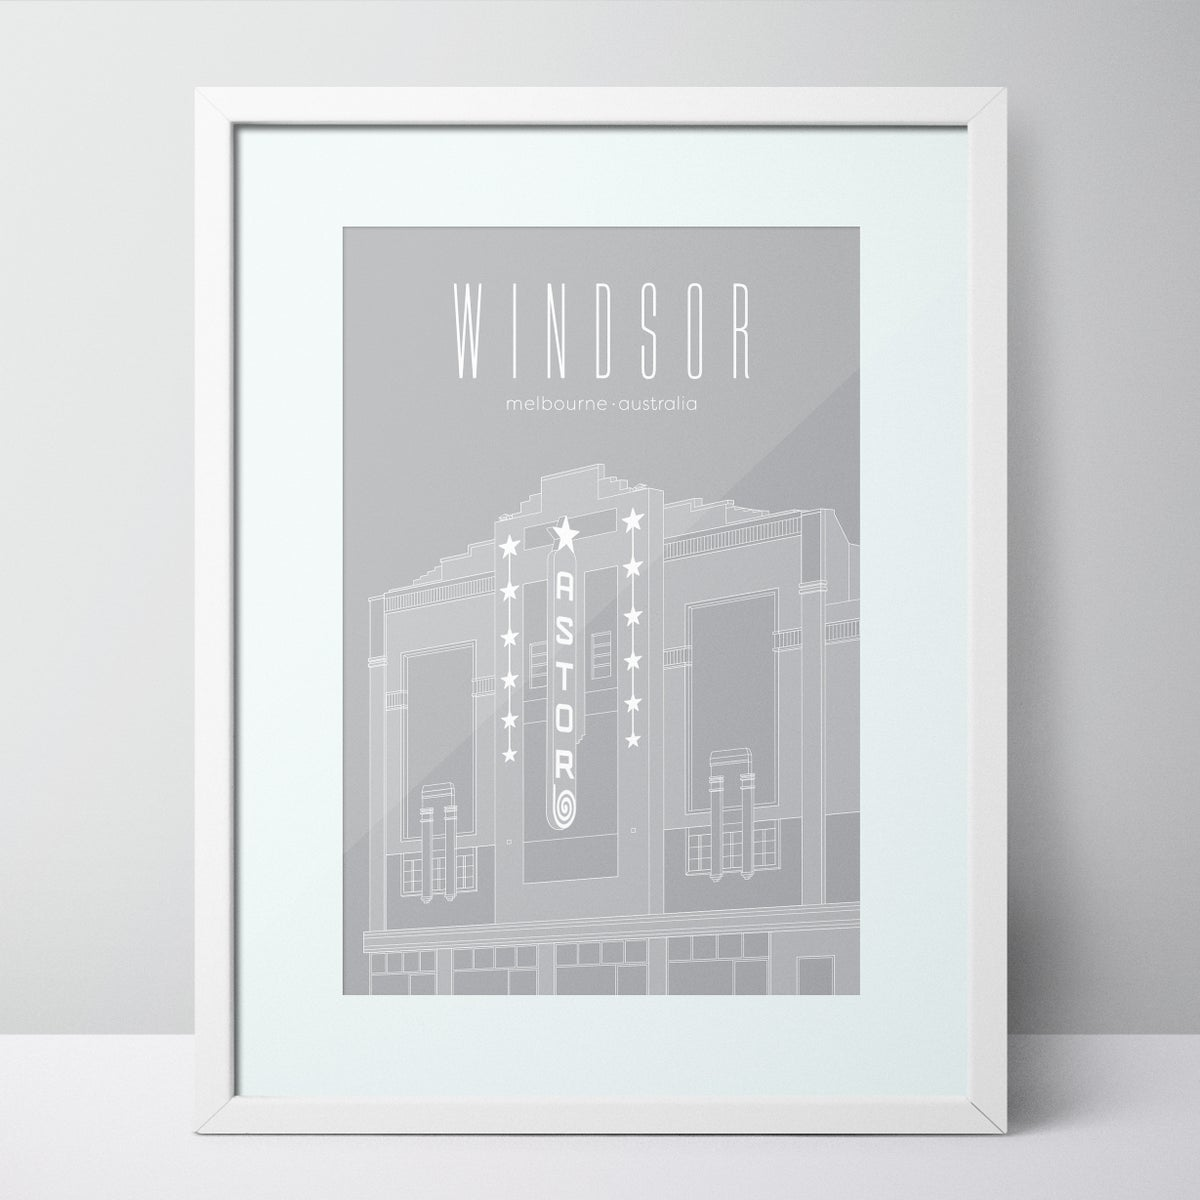 Image of The Astor Theatre - Windsor